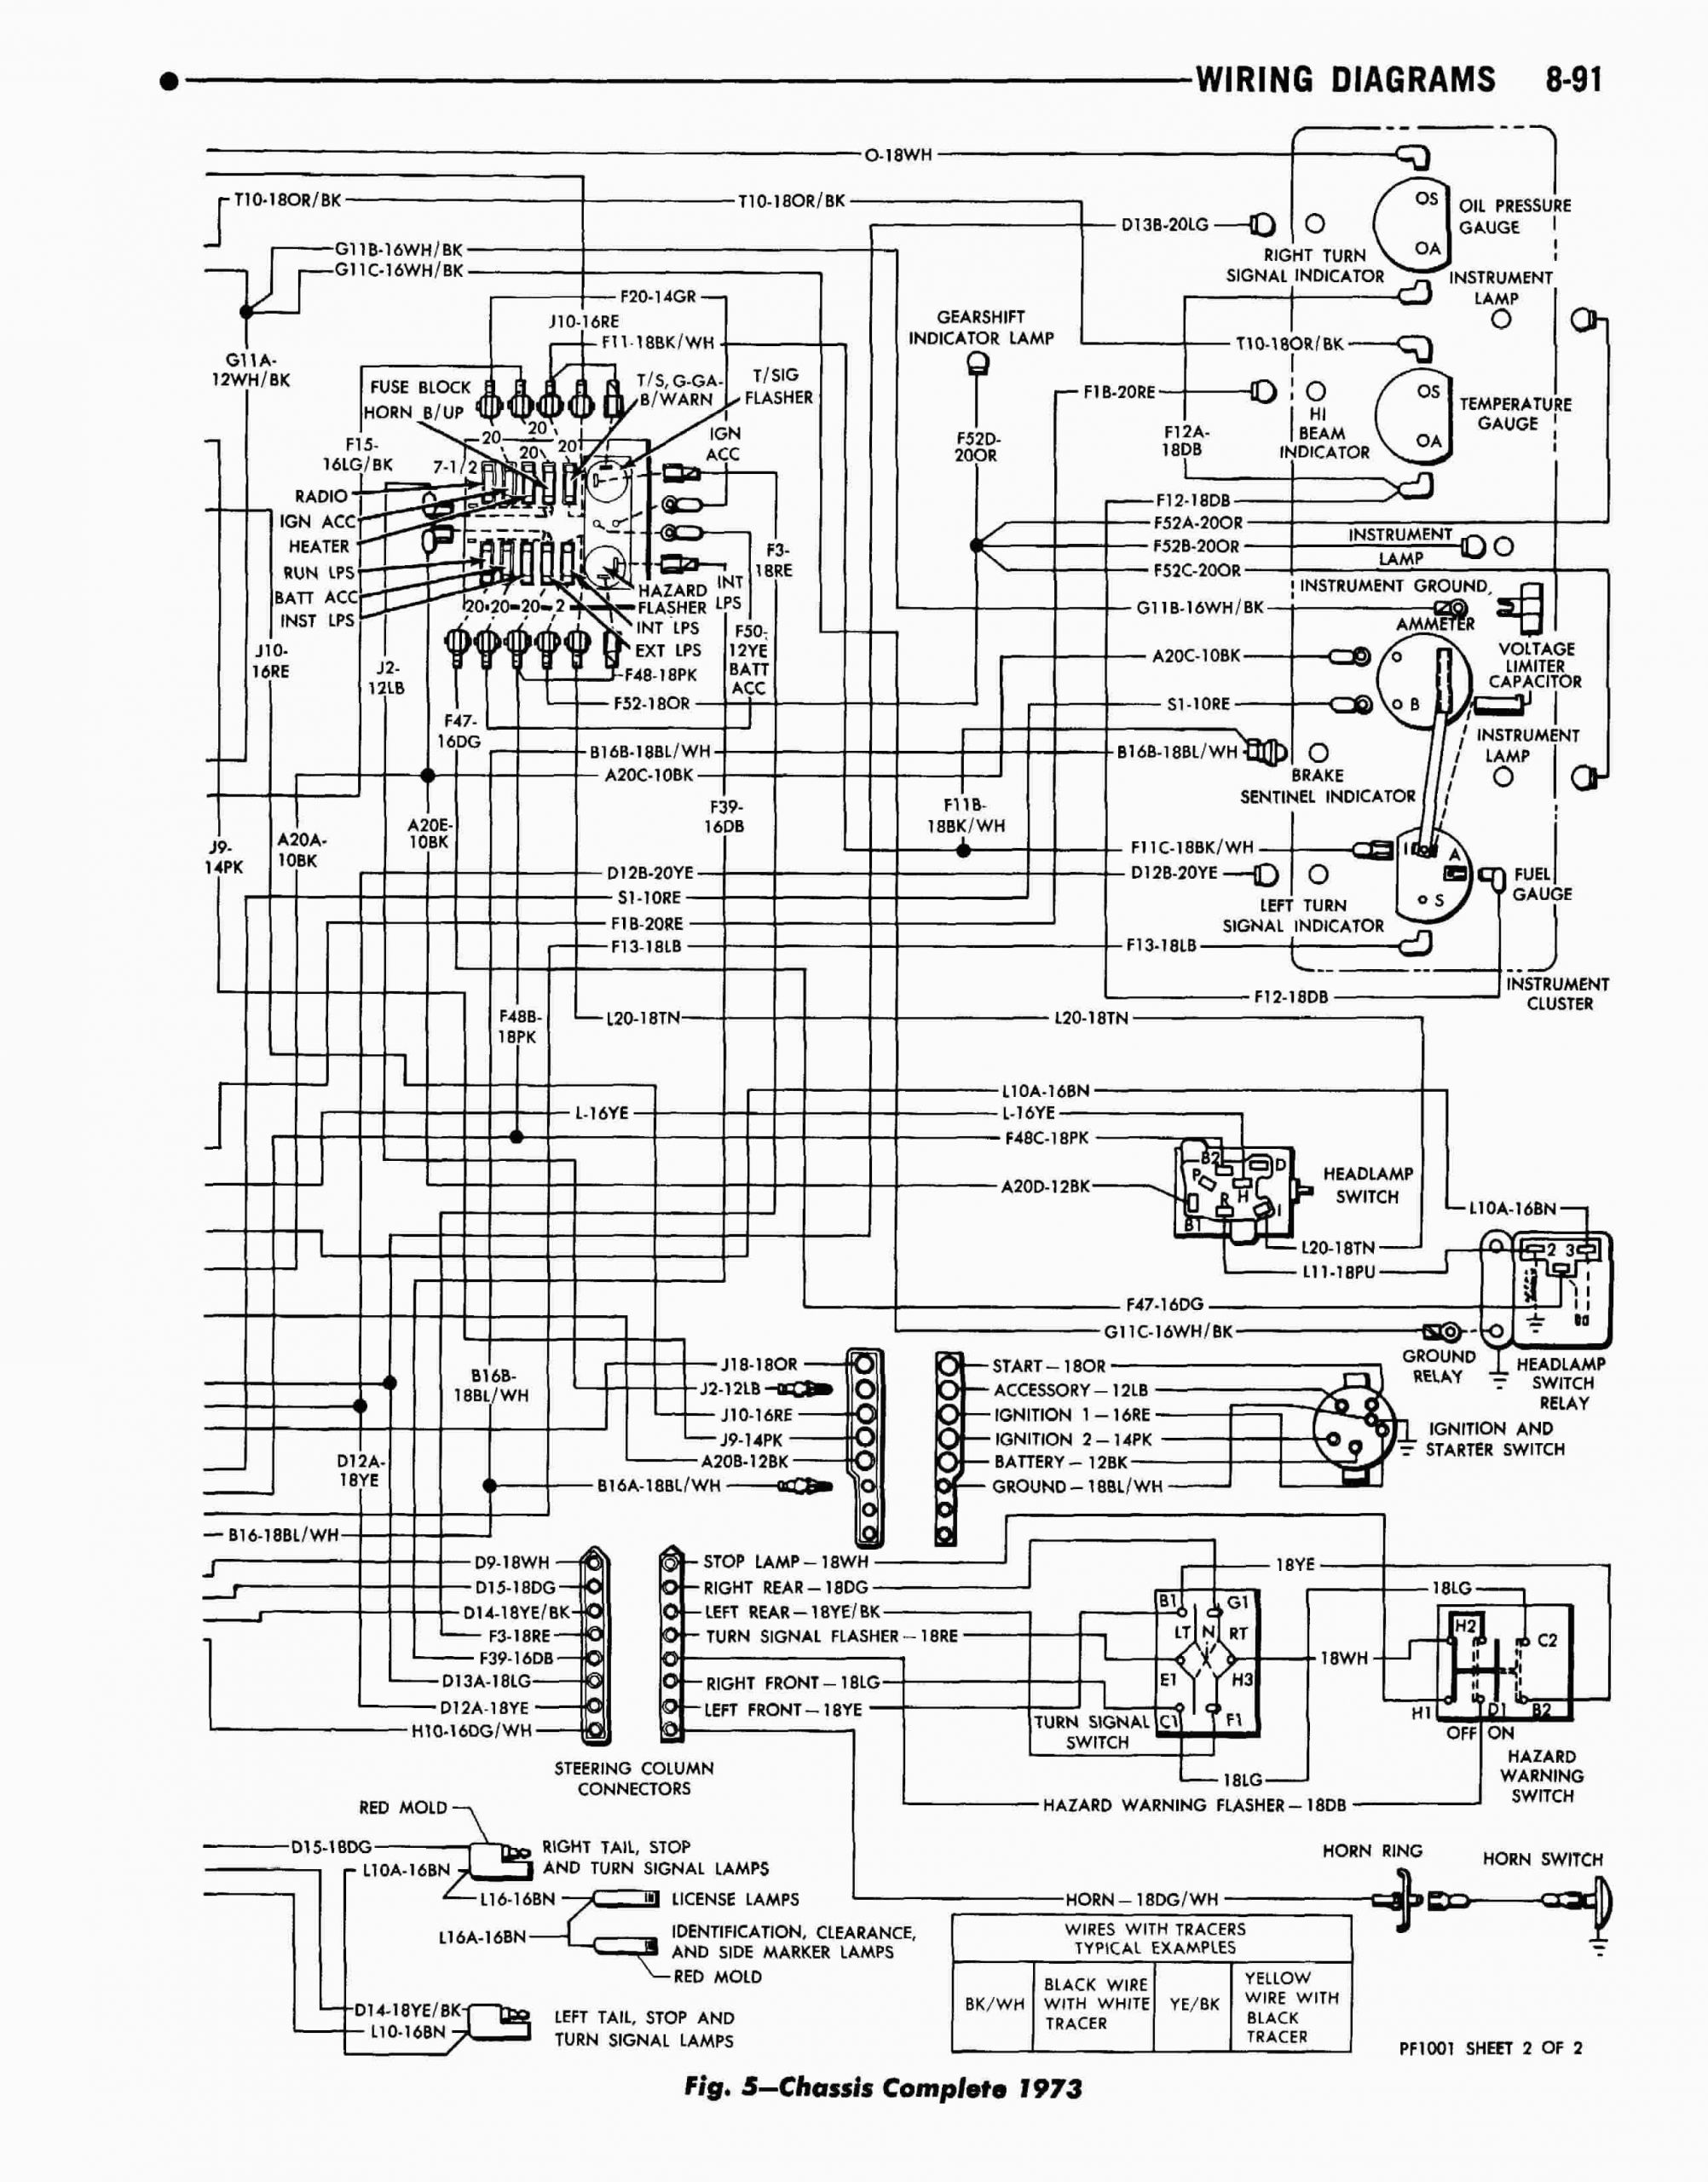 Ditch Witch Sk650 Wiring Diagram Ditch Witch Parts Diagram Of Ditch Witch Sk650 Wiring Diagram